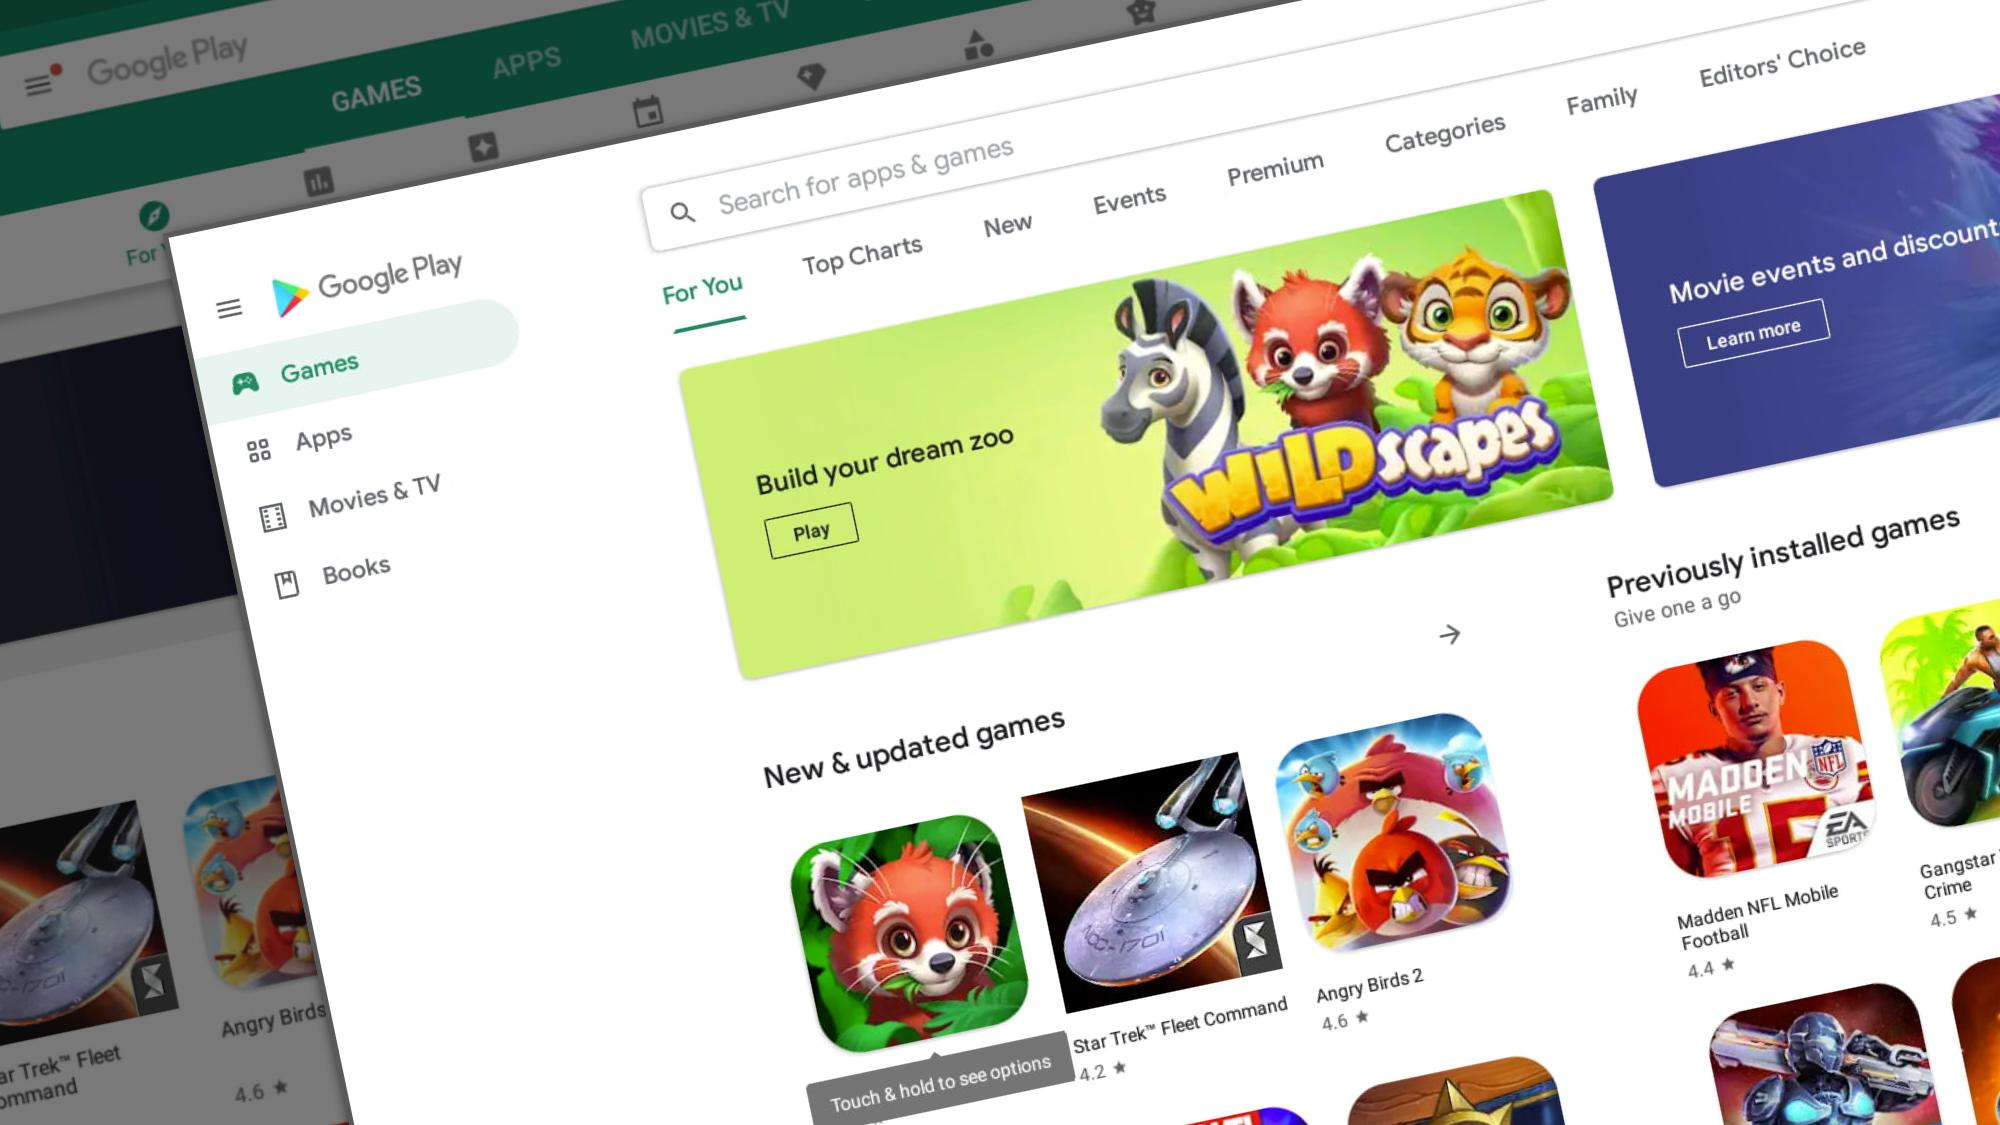 Google Play design overhaul is rolling out and it looks awesome on a Chromebook